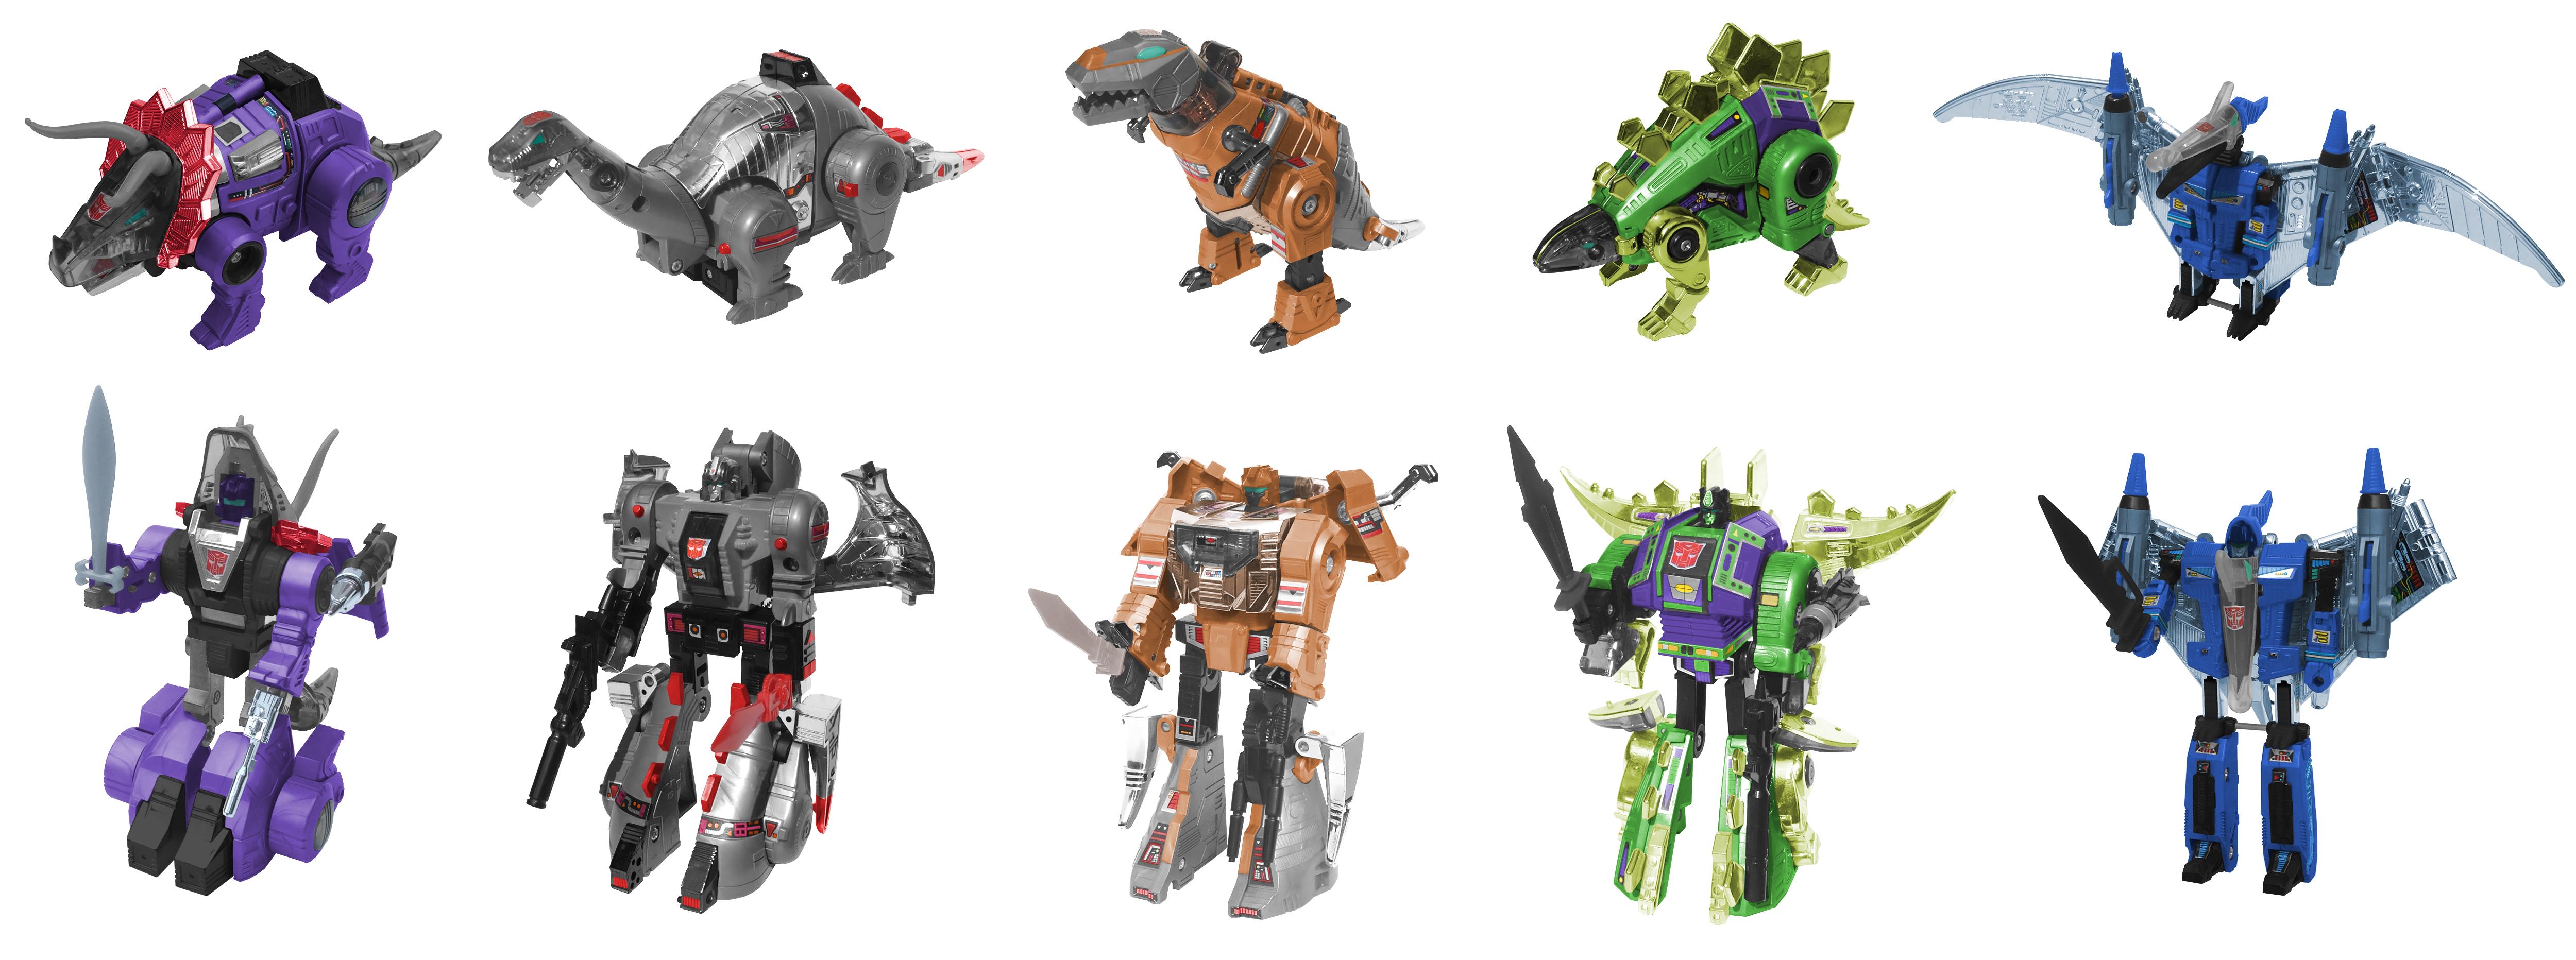 G1 Aoe Dinobots Digibash By Air Hammer On Deviantart